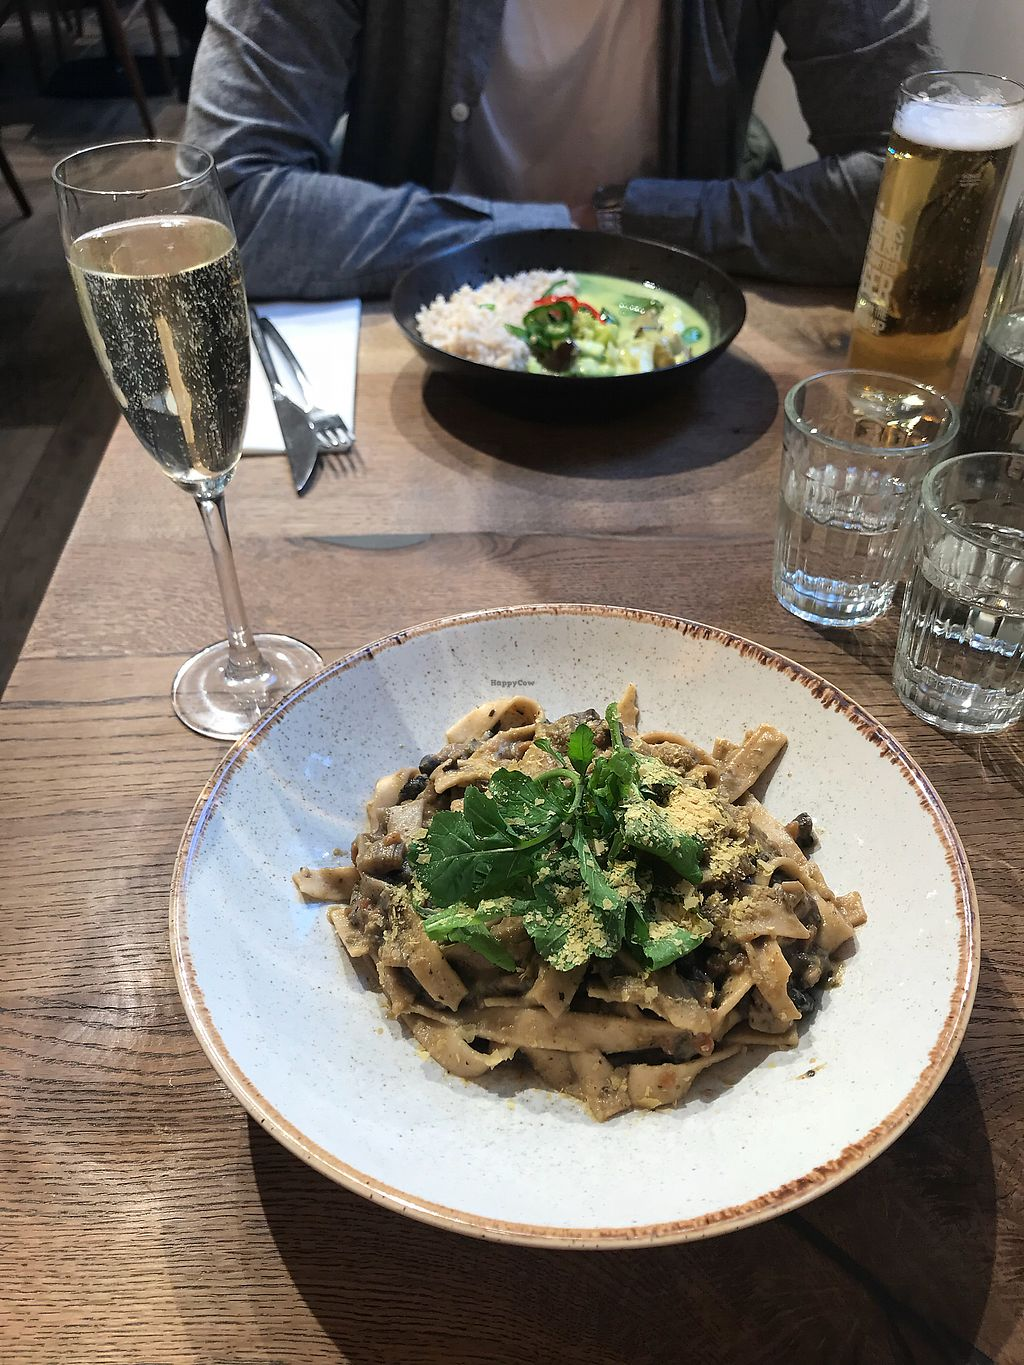 """Photo of Farmacy  by <a href=""""/members/profile/soph161"""">soph161</a> <br/>Mushroom pasta and curry <br/> April 9, 2018  - <a href='/contact/abuse/image/74162/383020'>Report</a>"""